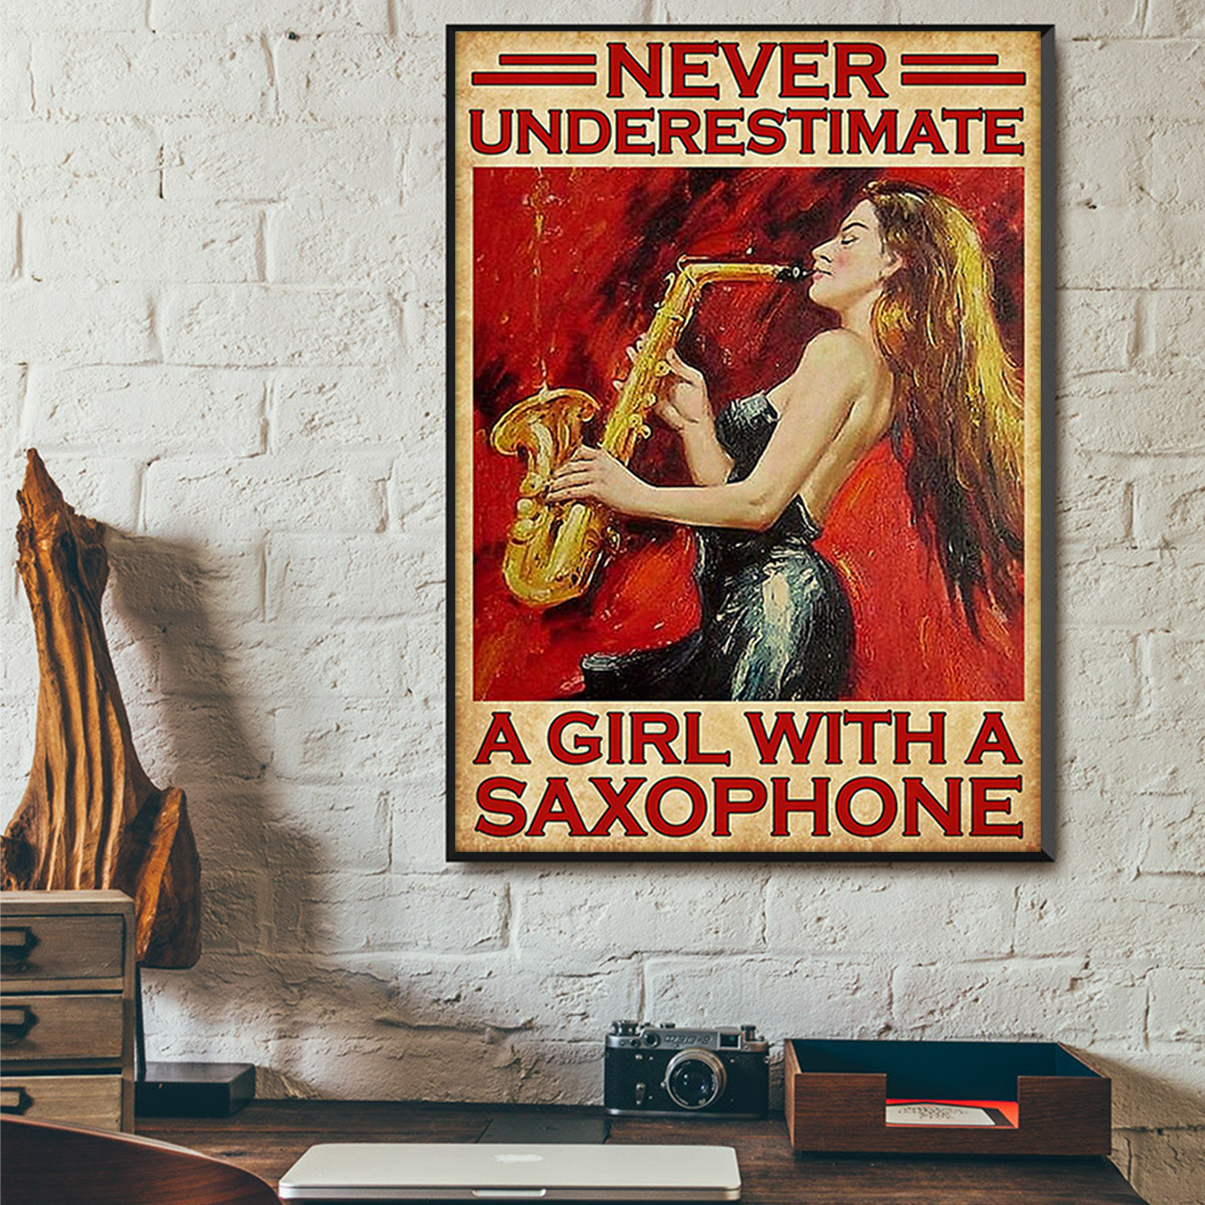 Never underestimate a girl with a saxophone poster A2